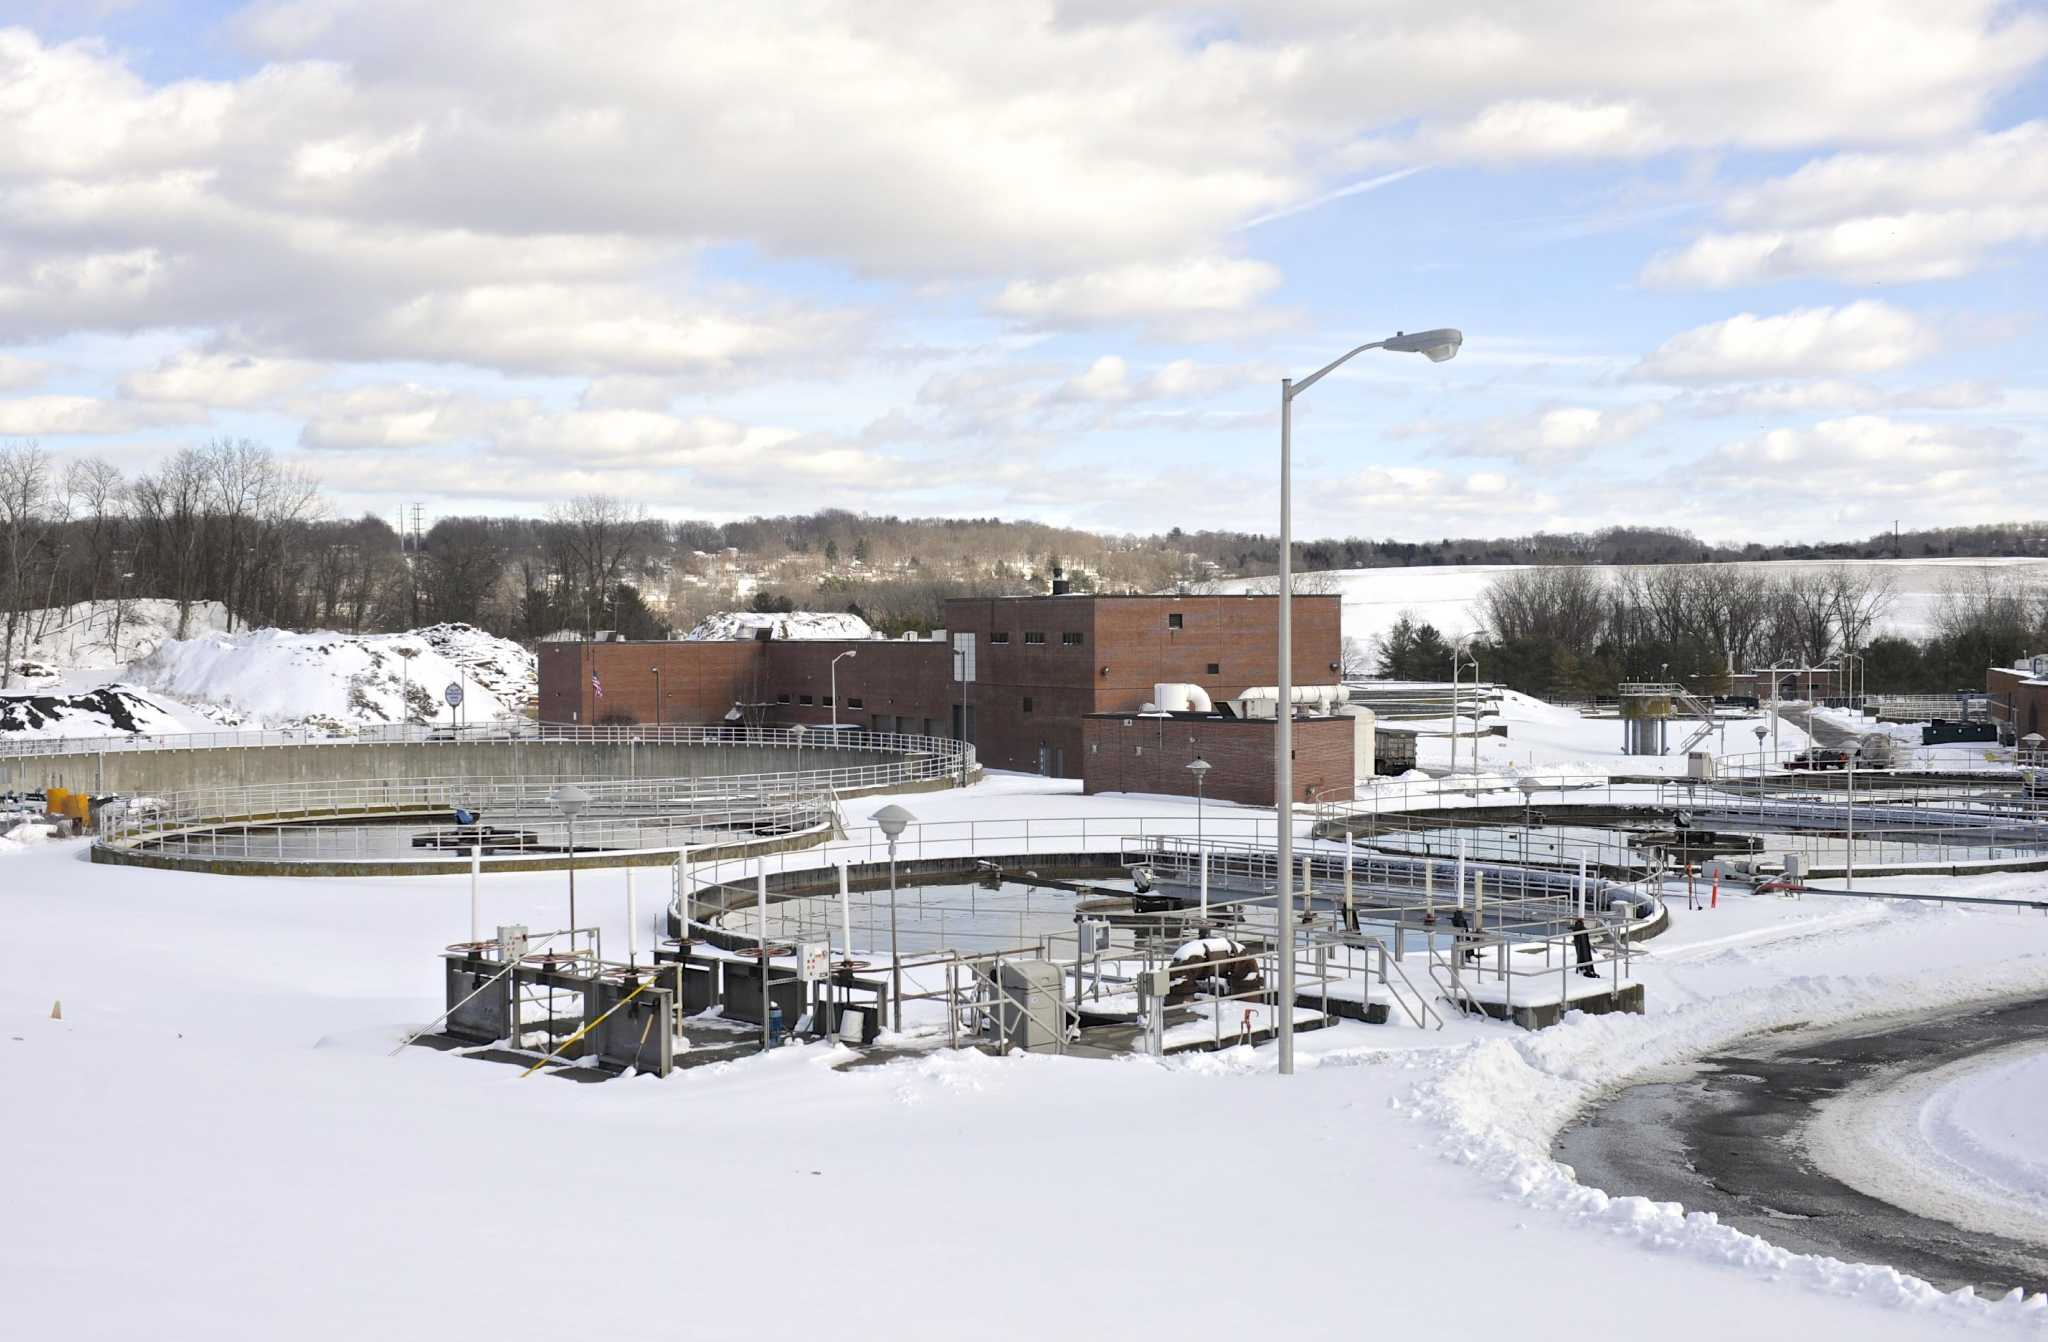 Danbury to reduce capacity at waste treatment facility - NewsTimes